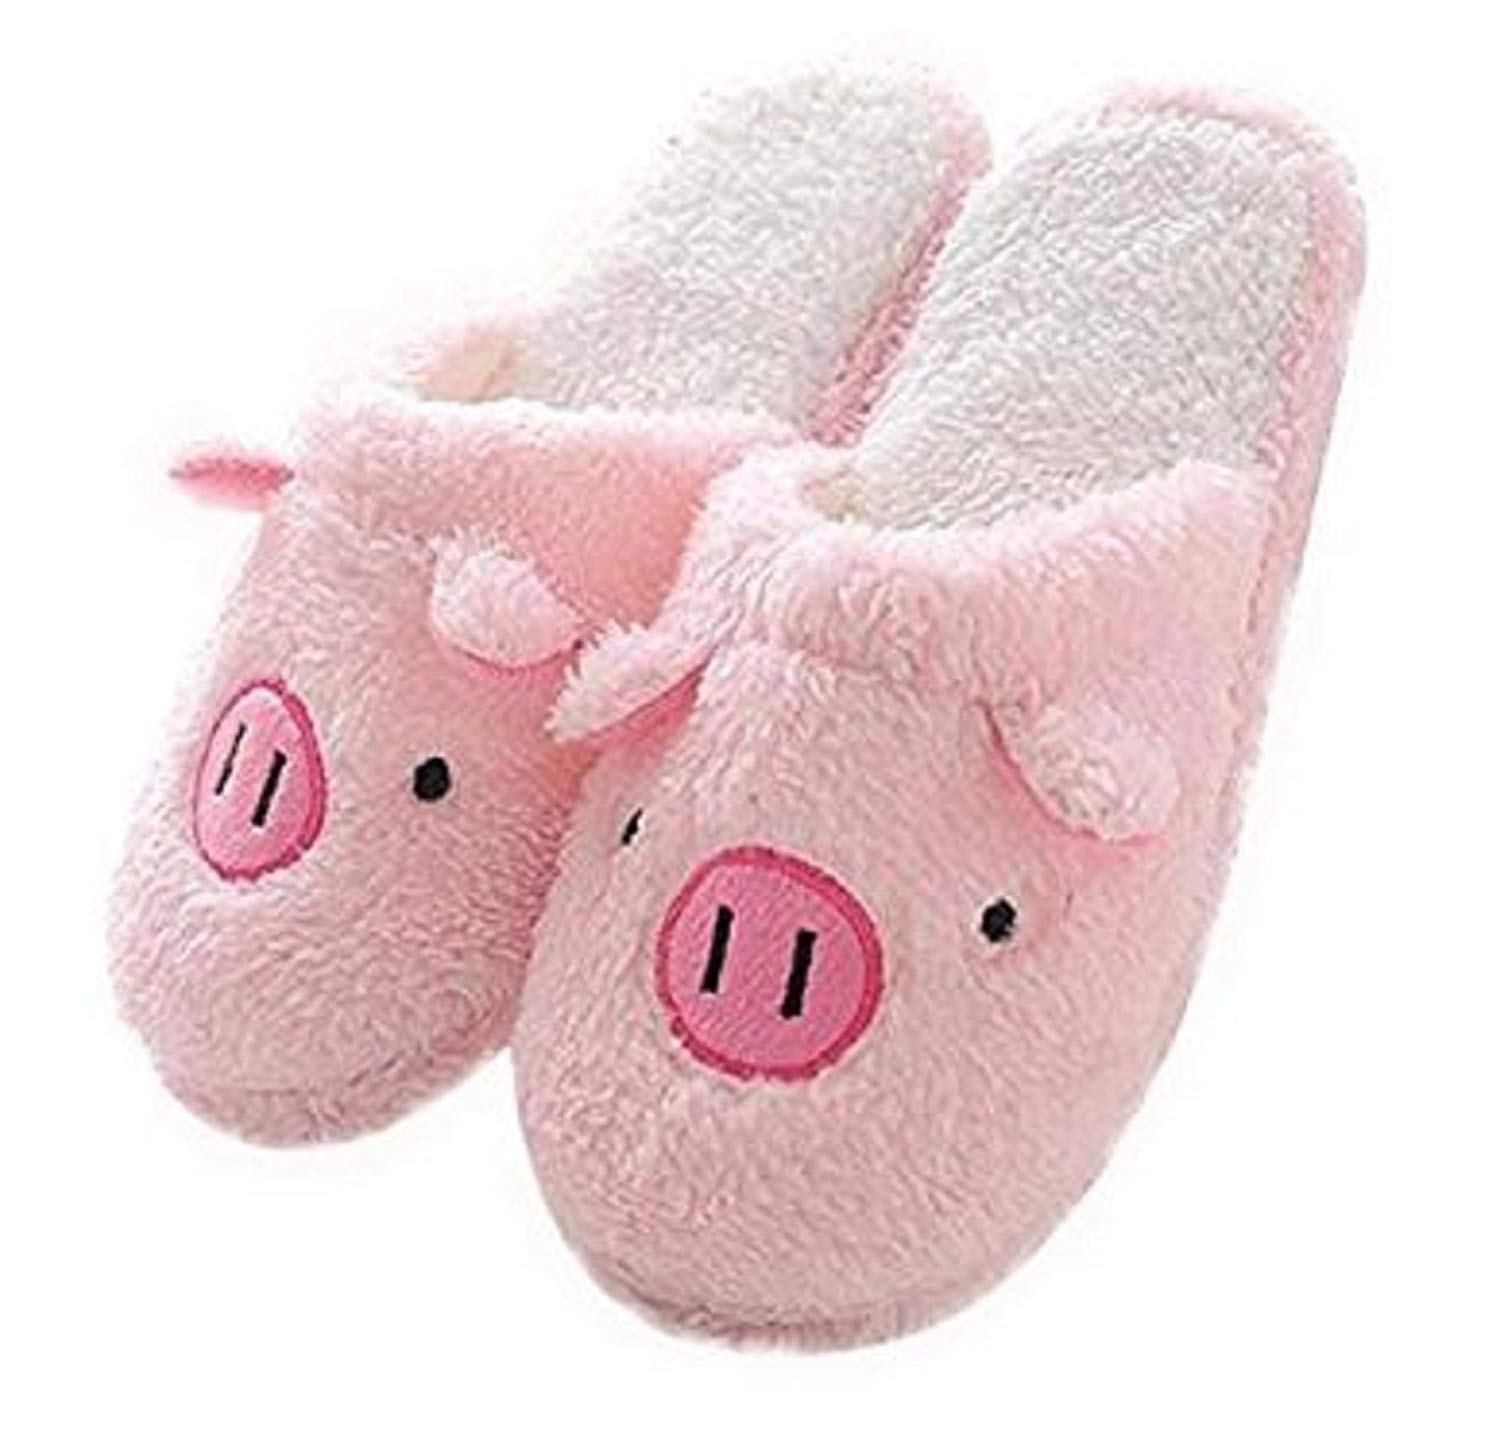 3d0fb1c27f5 Get Quotations · TOKYO-T Fuzzy Animal Slippers For Women Piggy Bunny Pink  Room Shoes Size 9